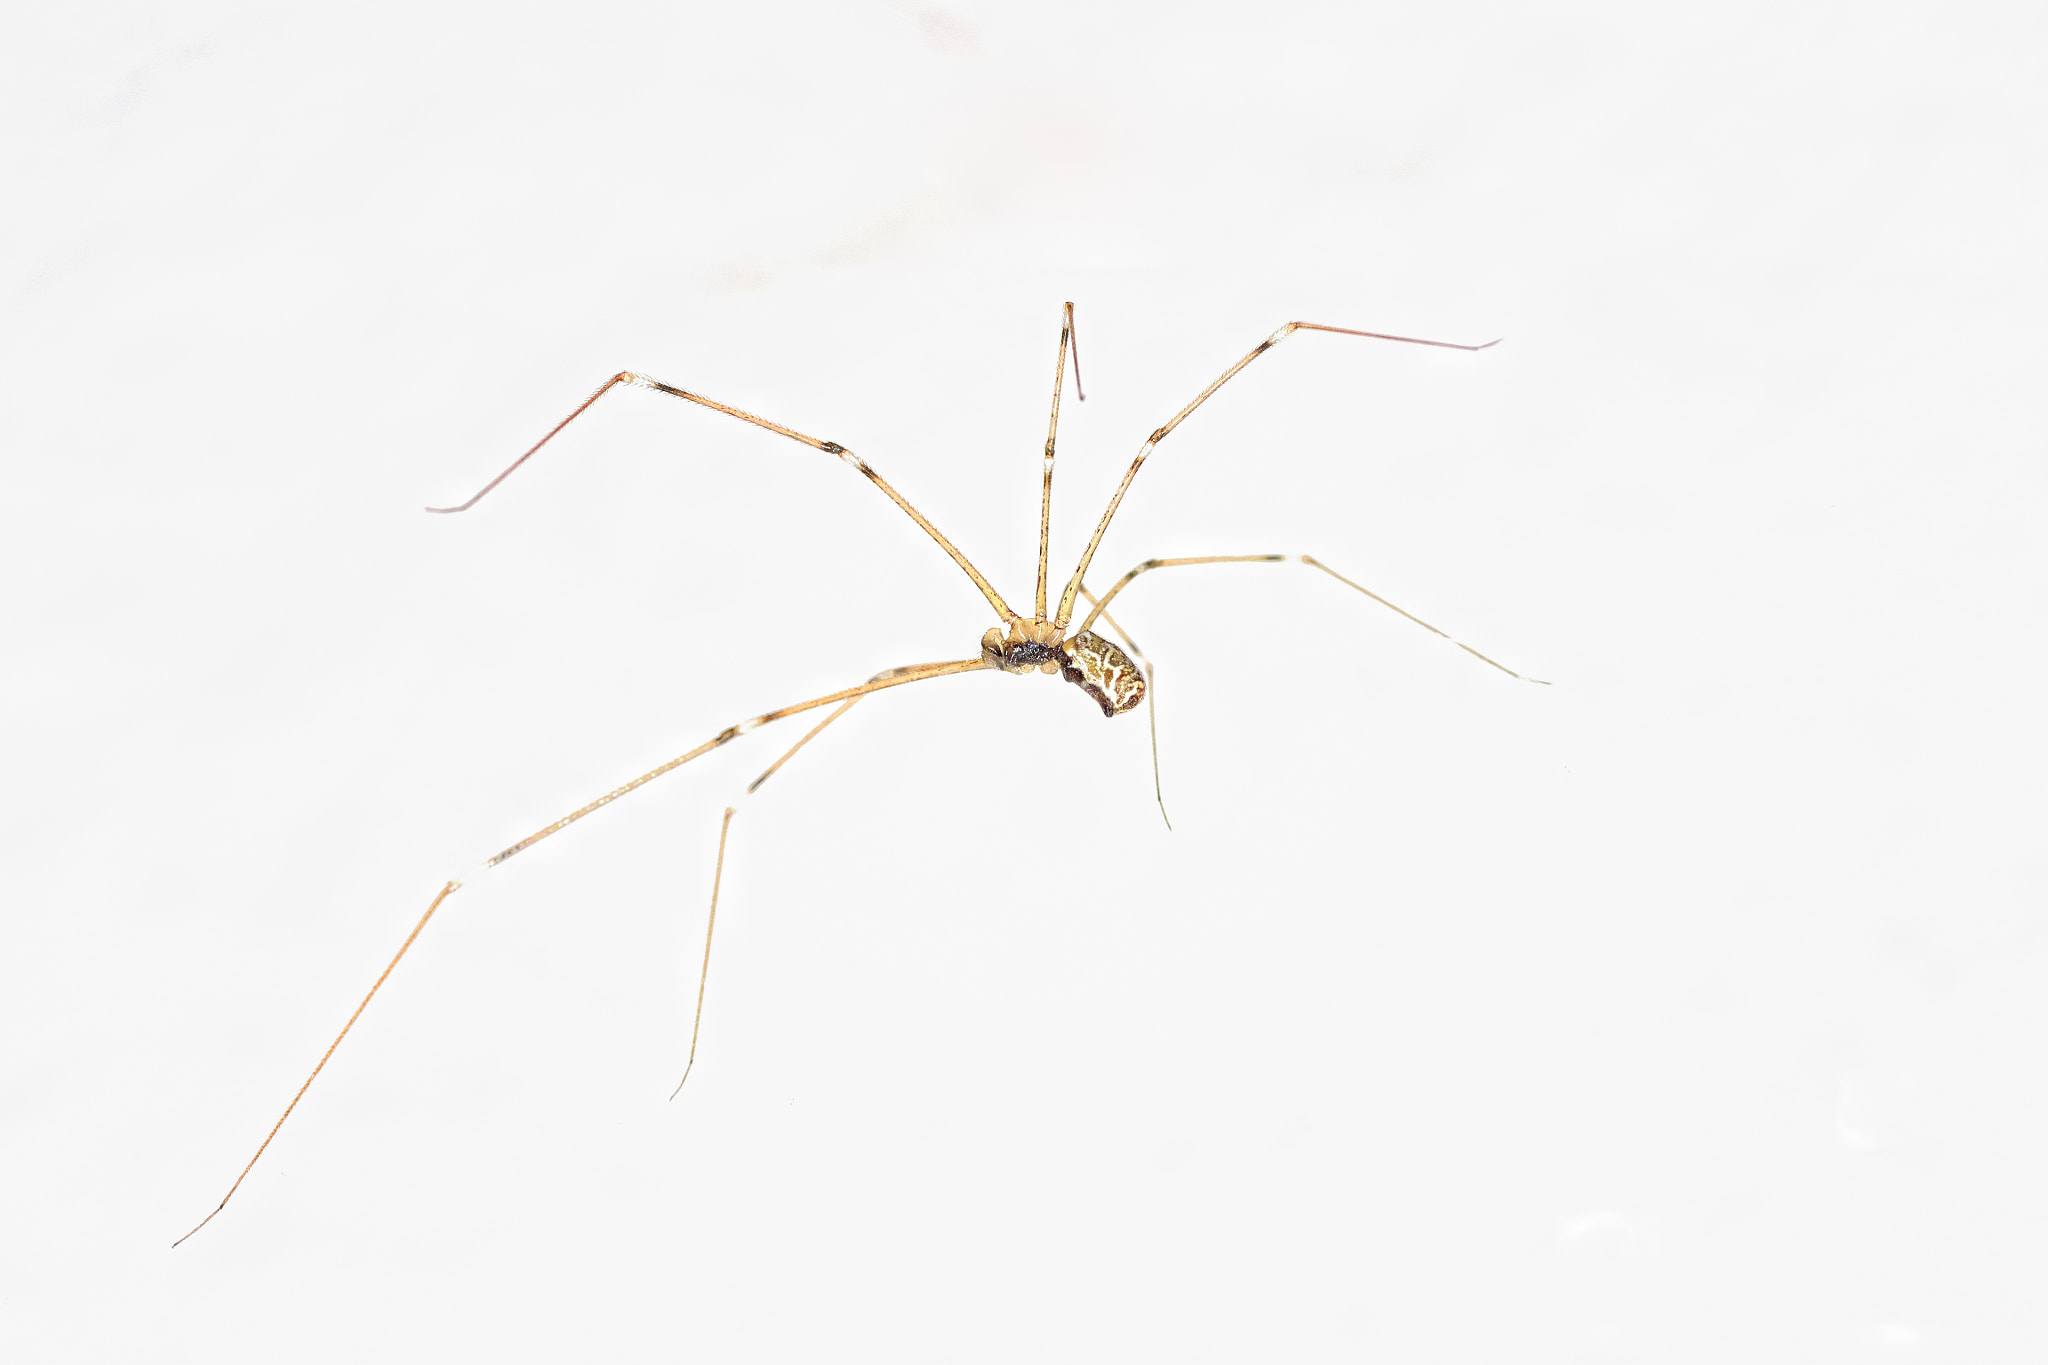 Photograph Spider, high key by Pilar Bau on 500px